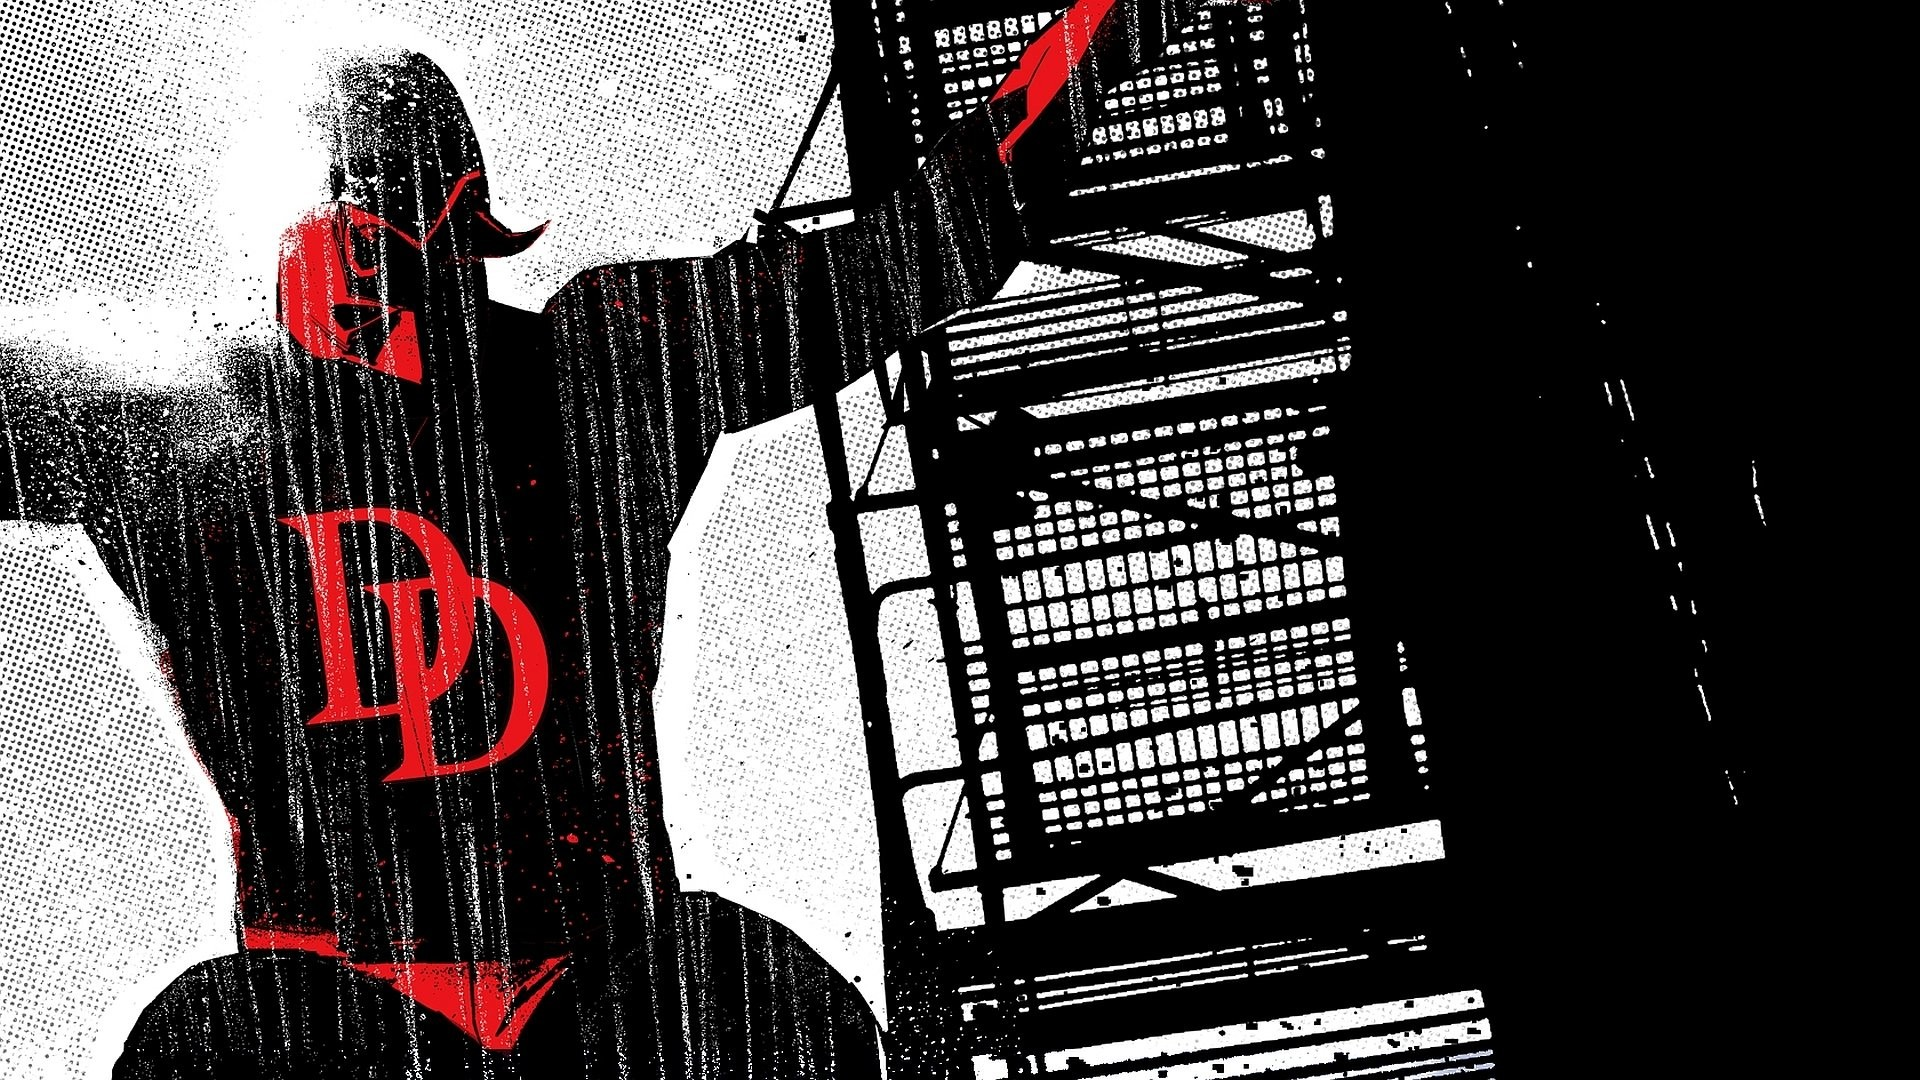 Res: 1920x1080, HD Wallpaper | Background Image ID:463127. Comics Daredevil